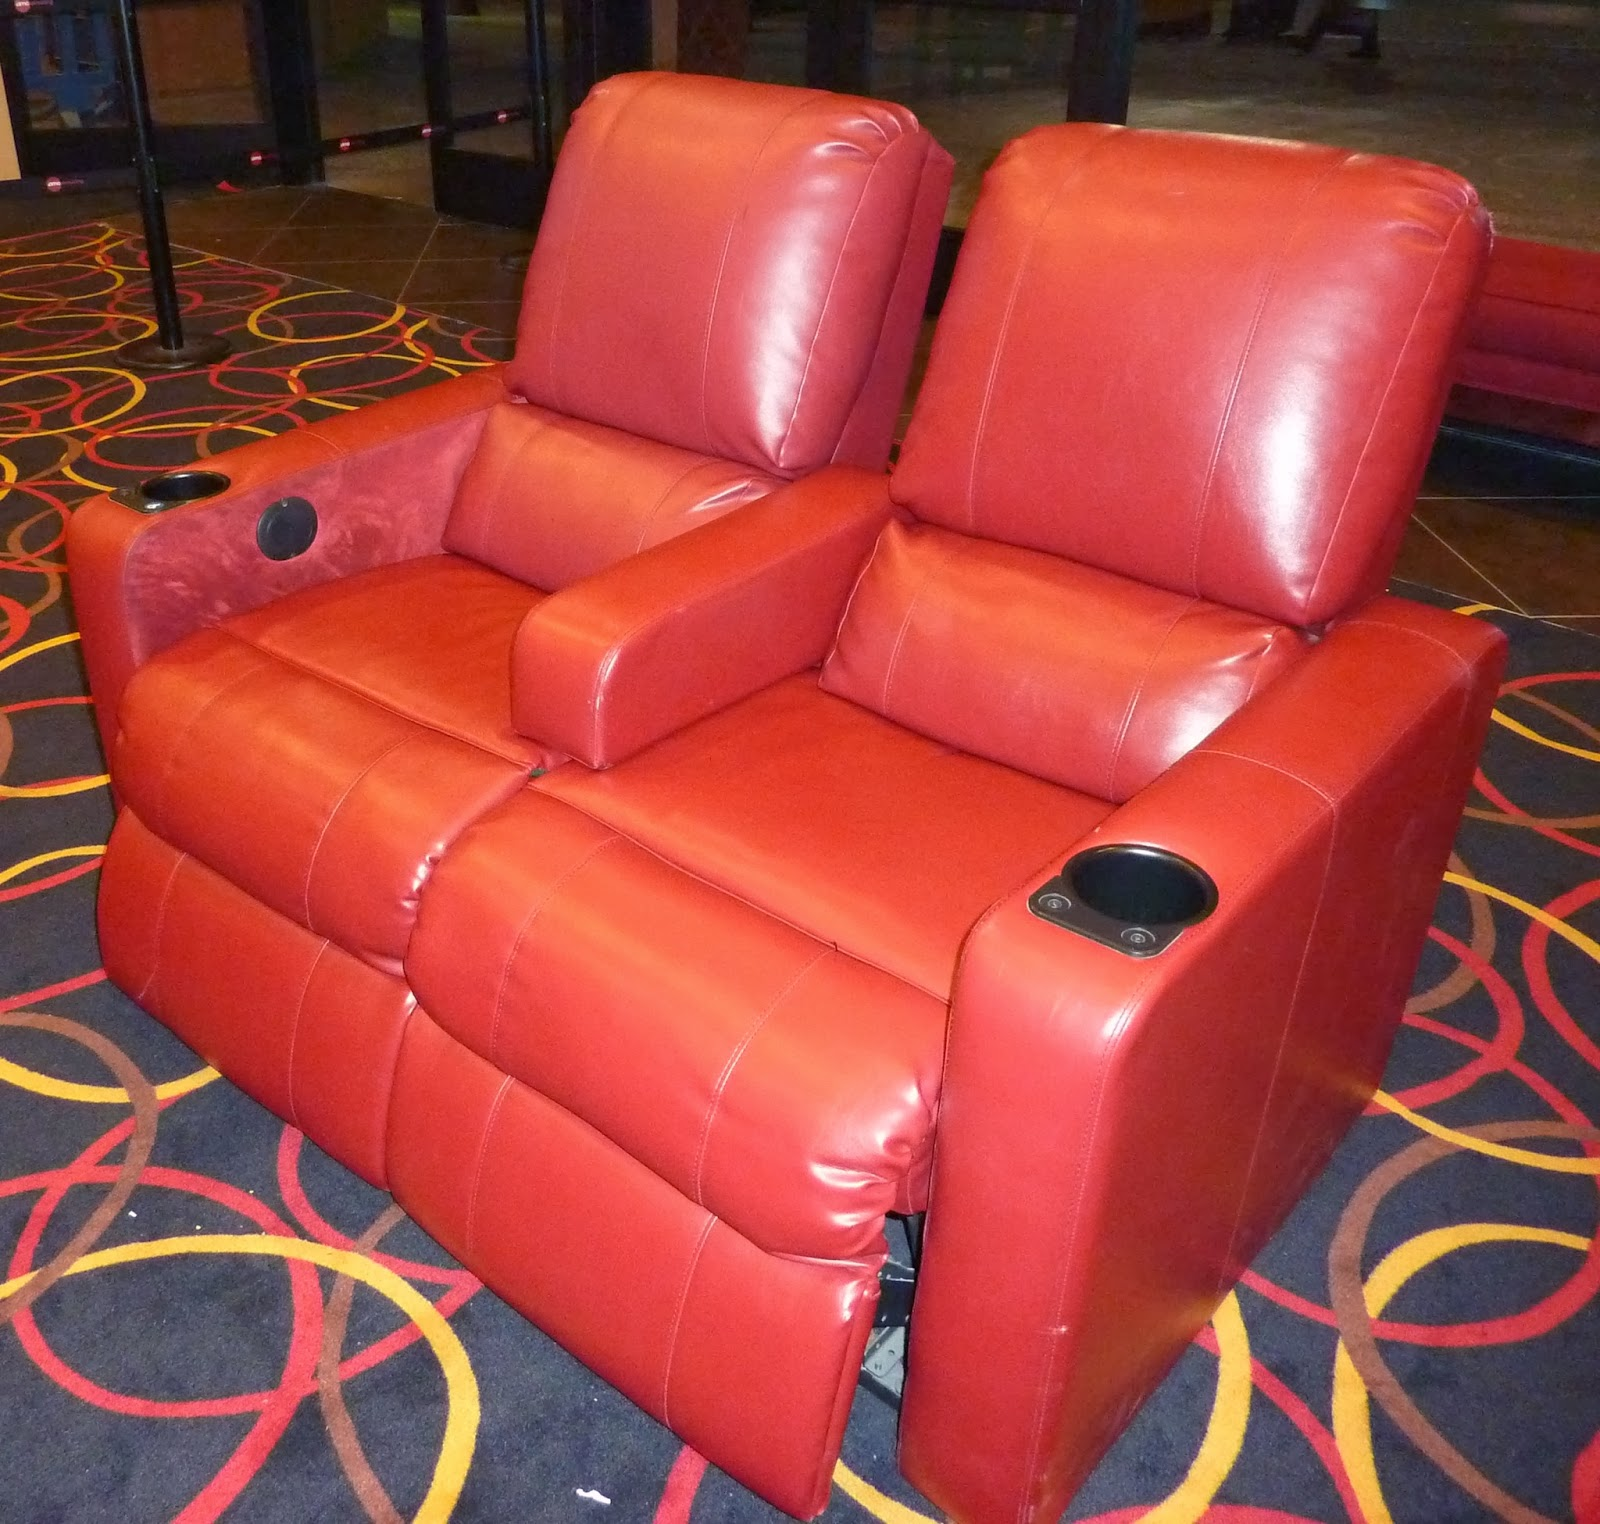 AMC Montebello NEW u0026 IMPROVED TICKET GIVEAWAY : amc theatre reclining seats - islam-shia.org